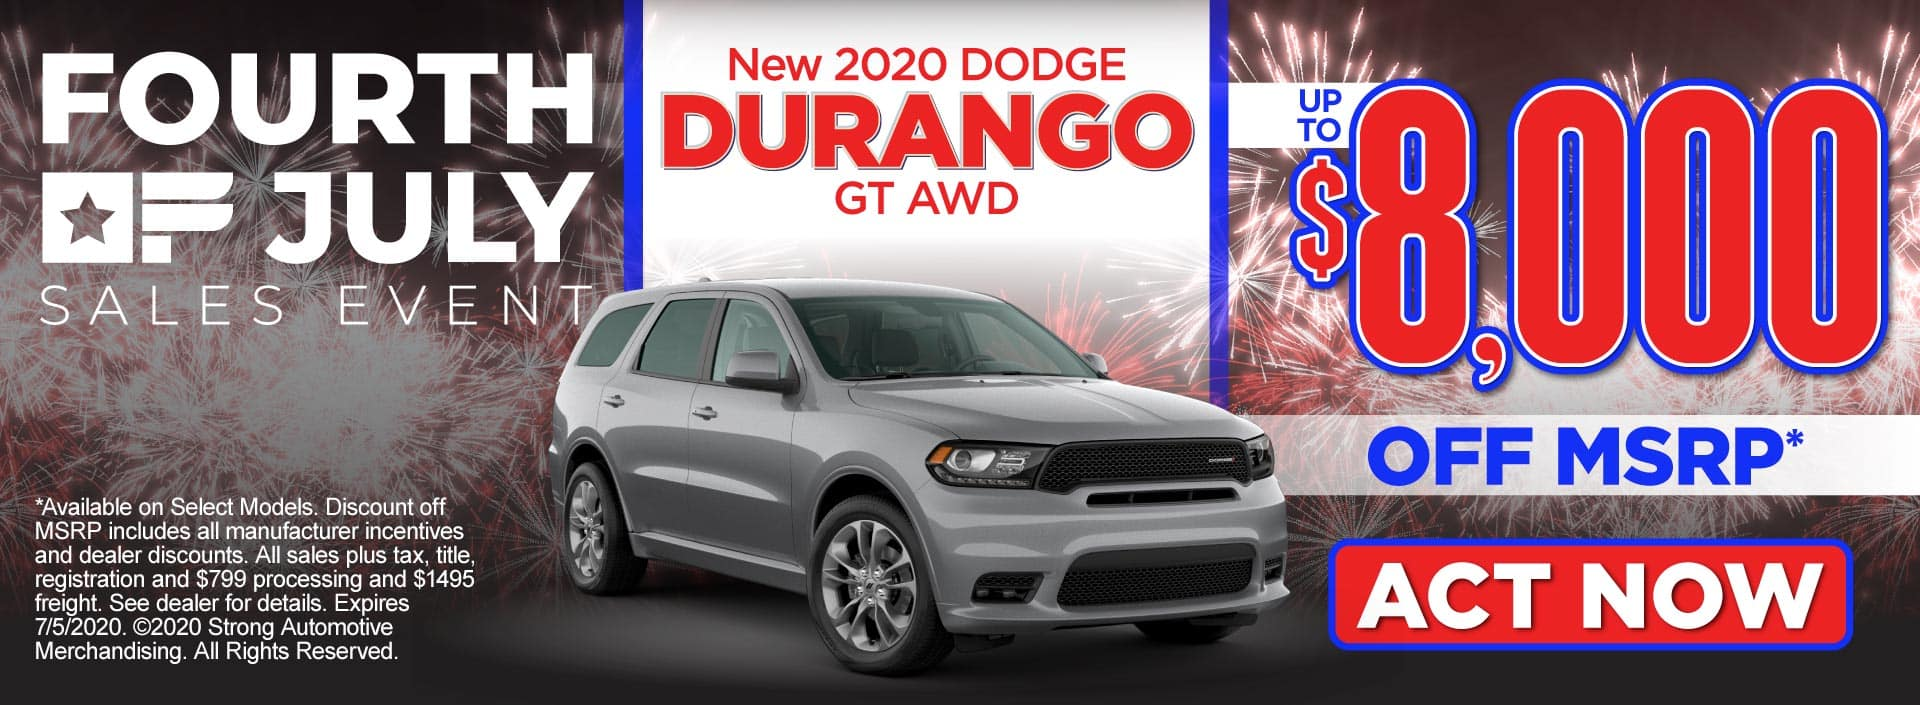 New 2020 Dodge Durango – up to $8,000 off MSRP* – Click to View Inventory